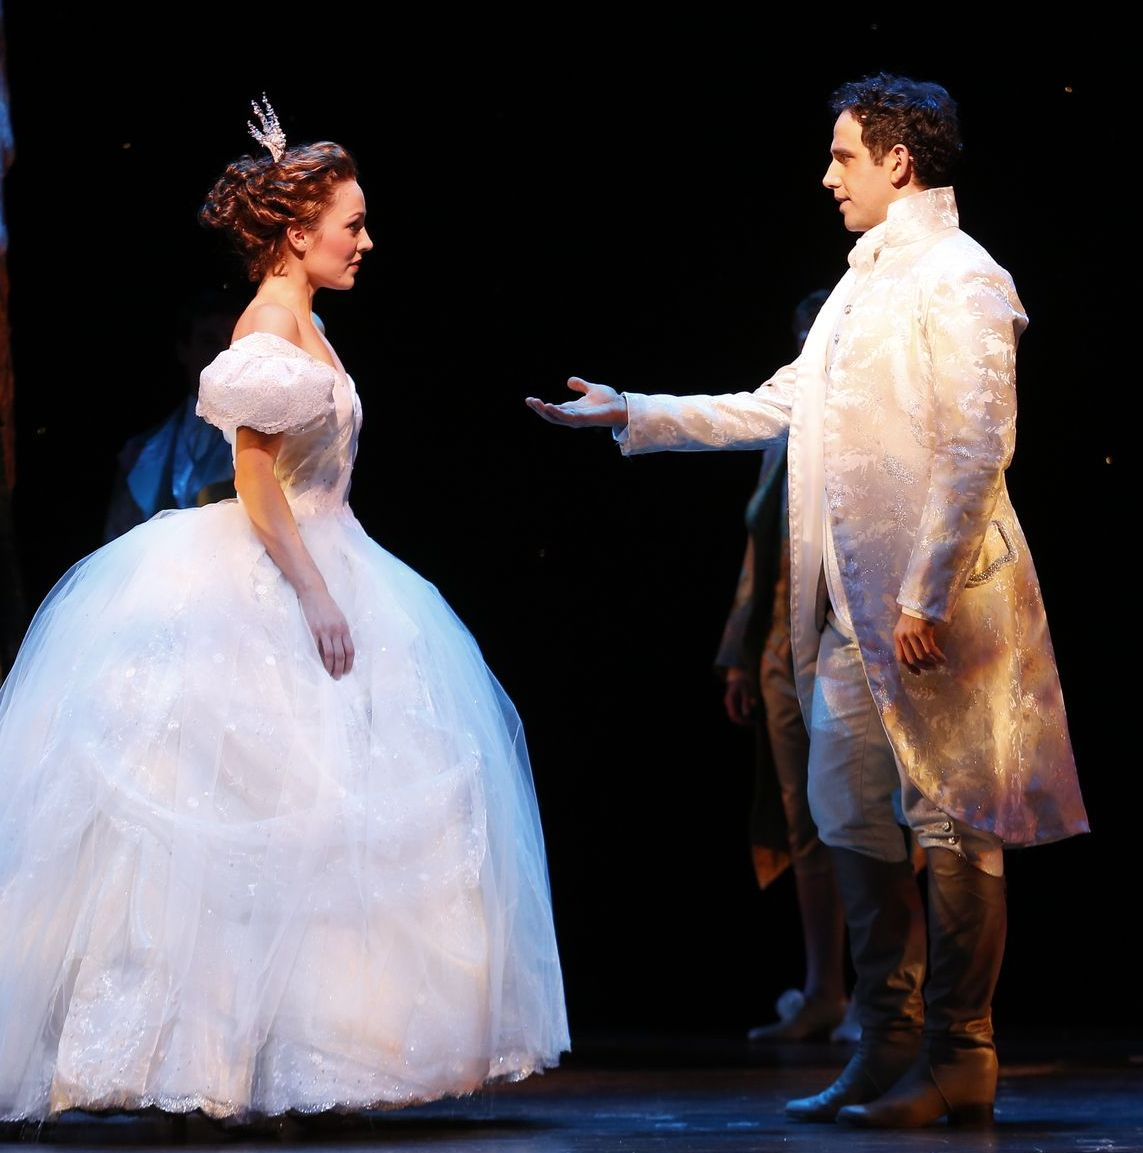 Prince Asking Cinderella to Dance in a Scene From Rogers and Hammersteins Cinderella